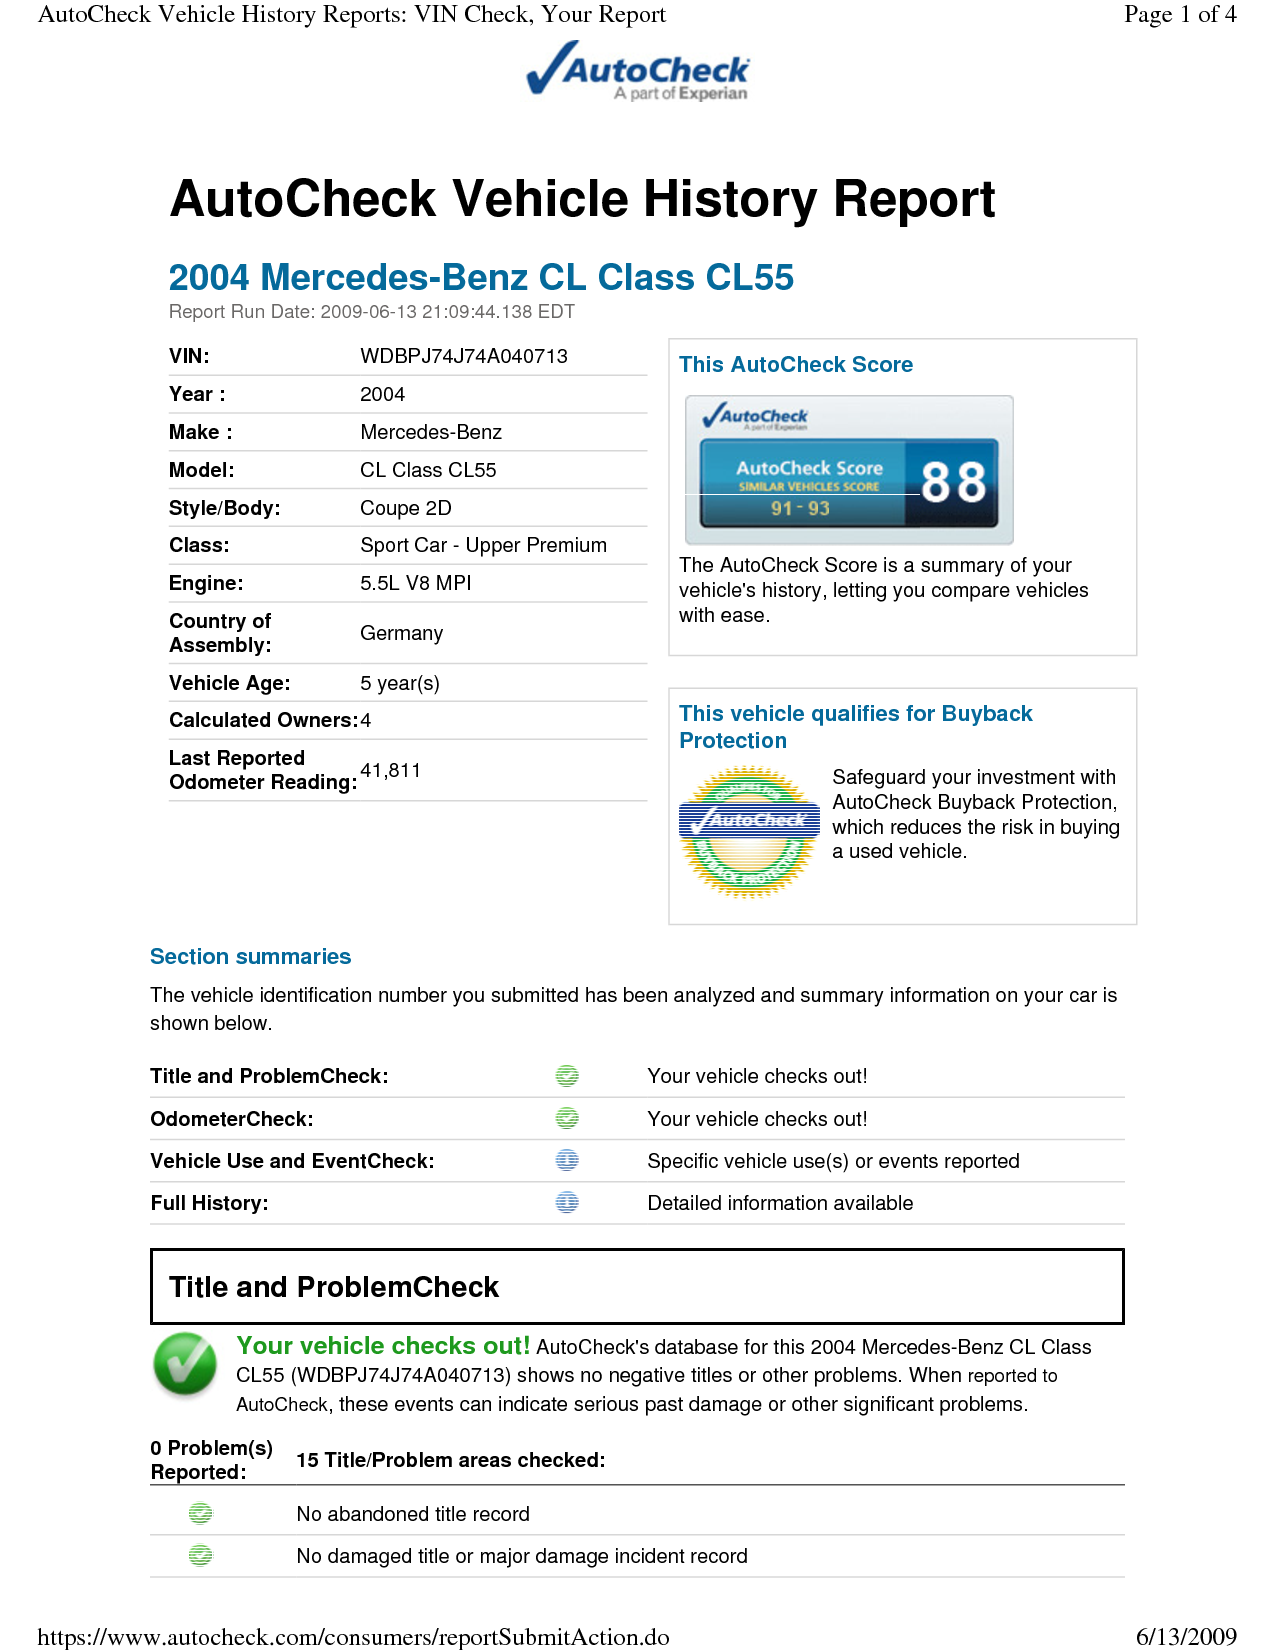 Beautiful Carfax and Autocheck